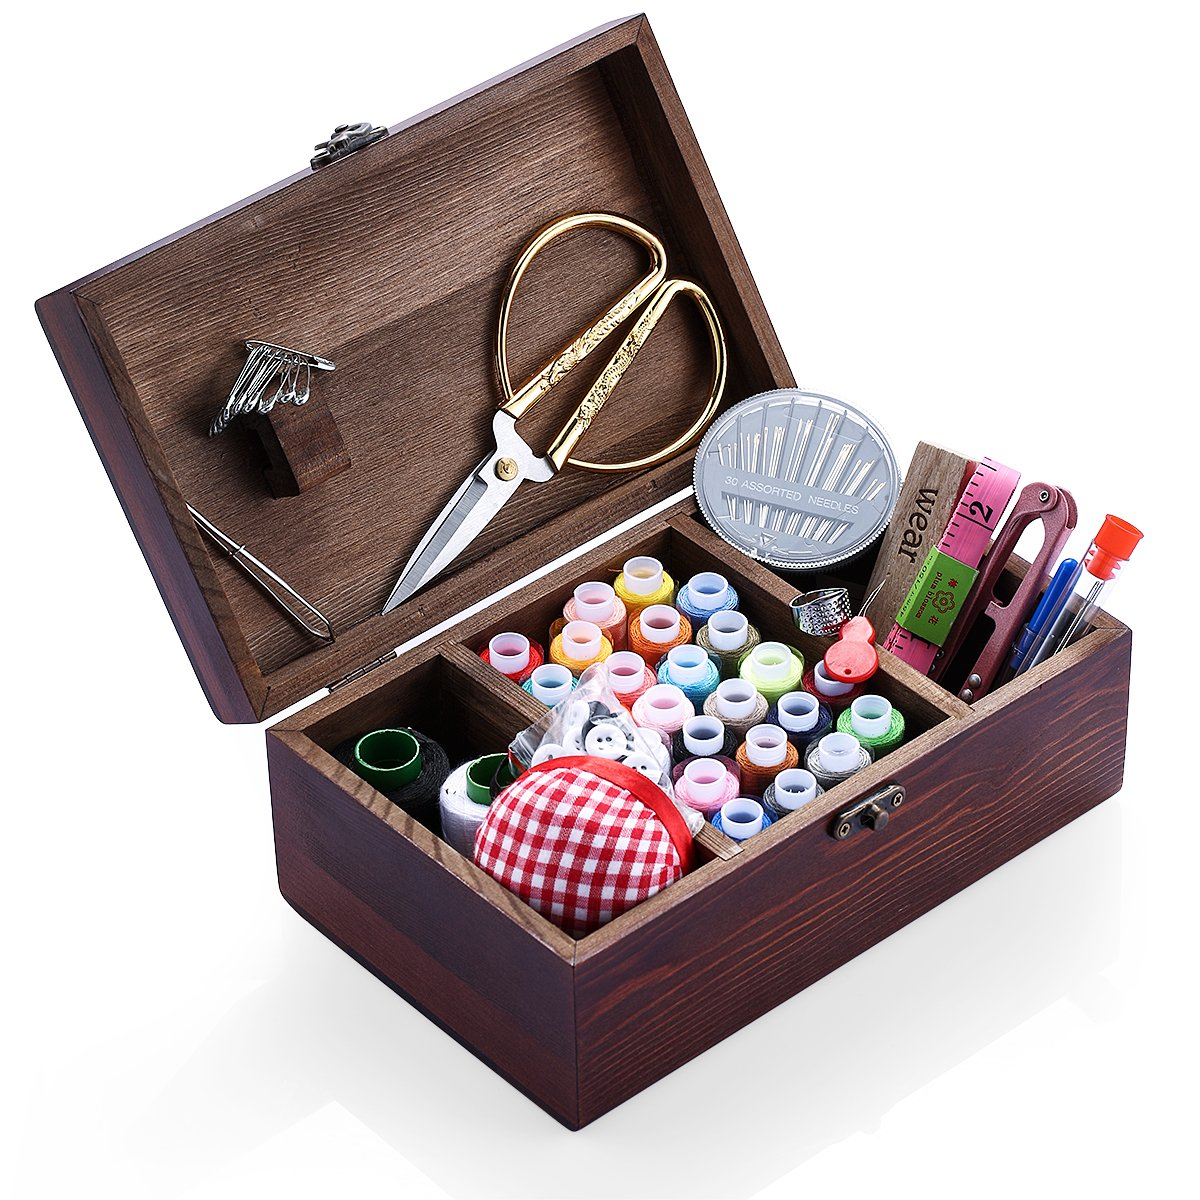 Good for Adults//Kids//Girls Wooden Sewing Kits Sewing Boxes and Baskets with Sewing Accessories Kit